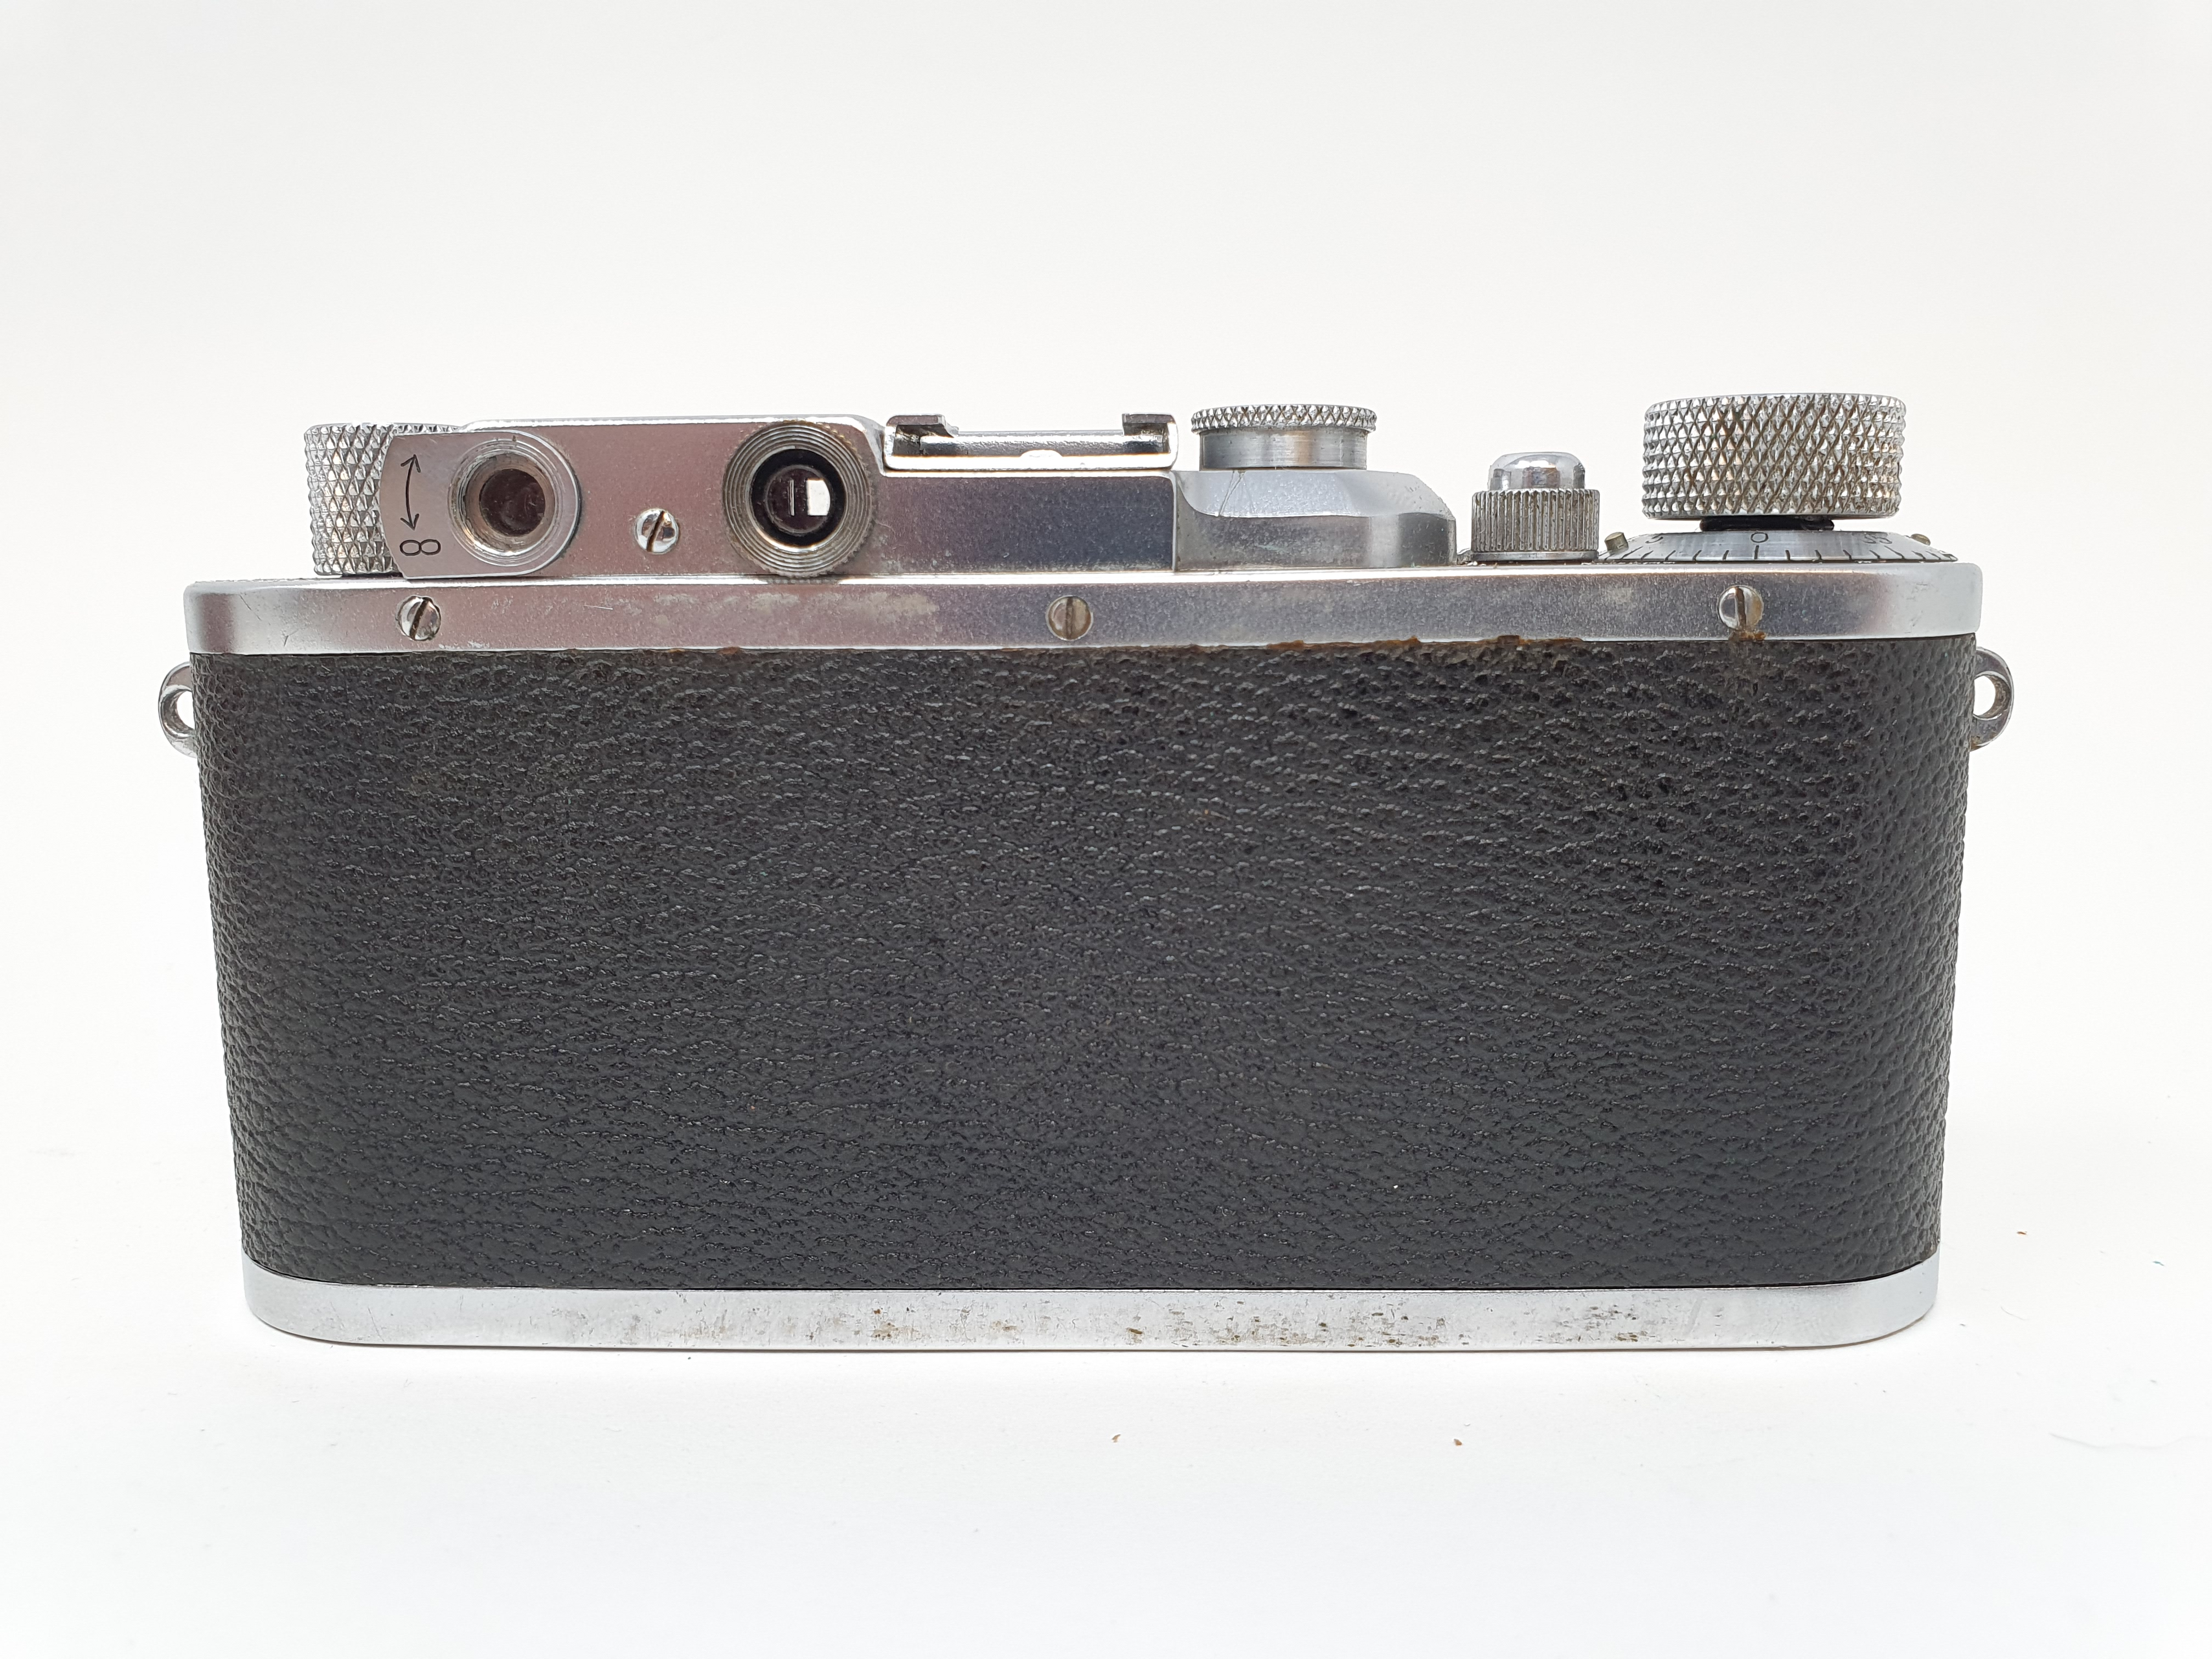 A Leica camera, serial number 120761, with leather outer case Provenance: Part of a vast single - Image 4 of 6